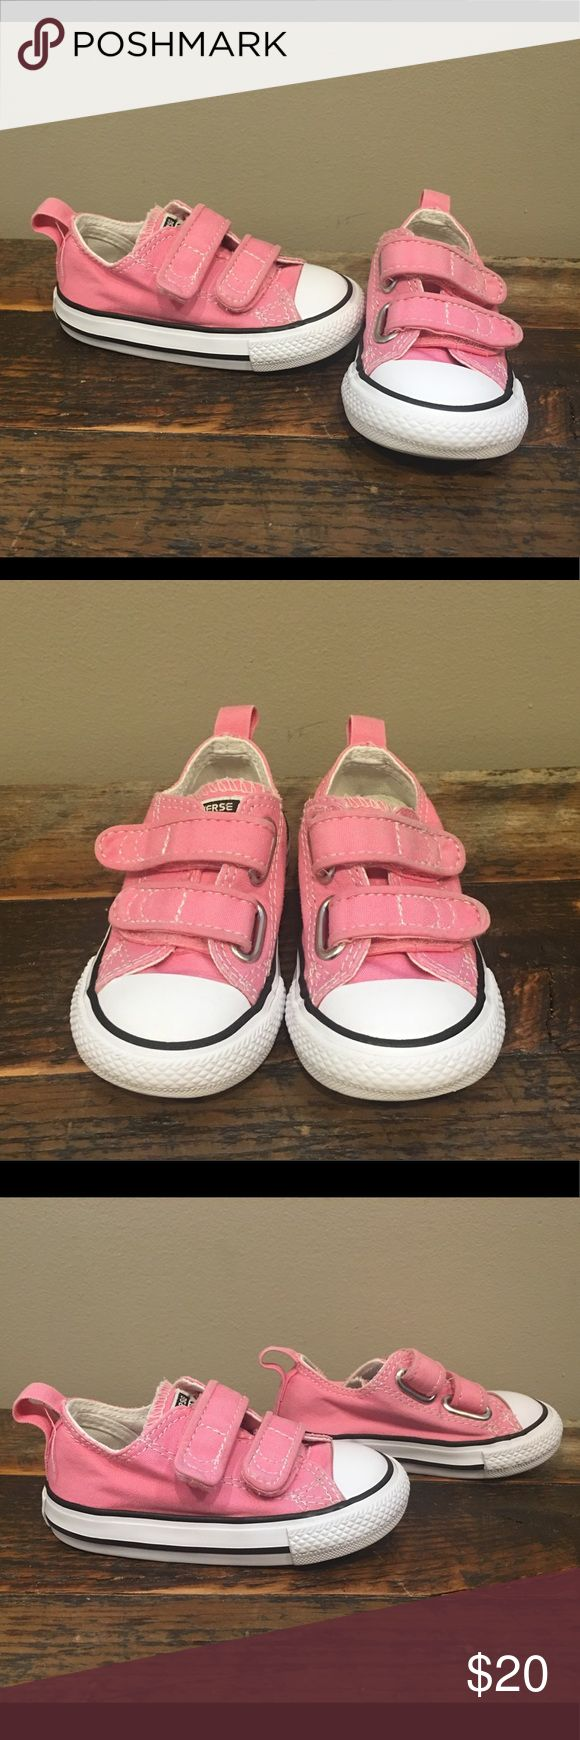 Converse Pink sz 5C Great condition, toddler size 5. Please check out my closet for more awesome kids shoes! Converse Shoes